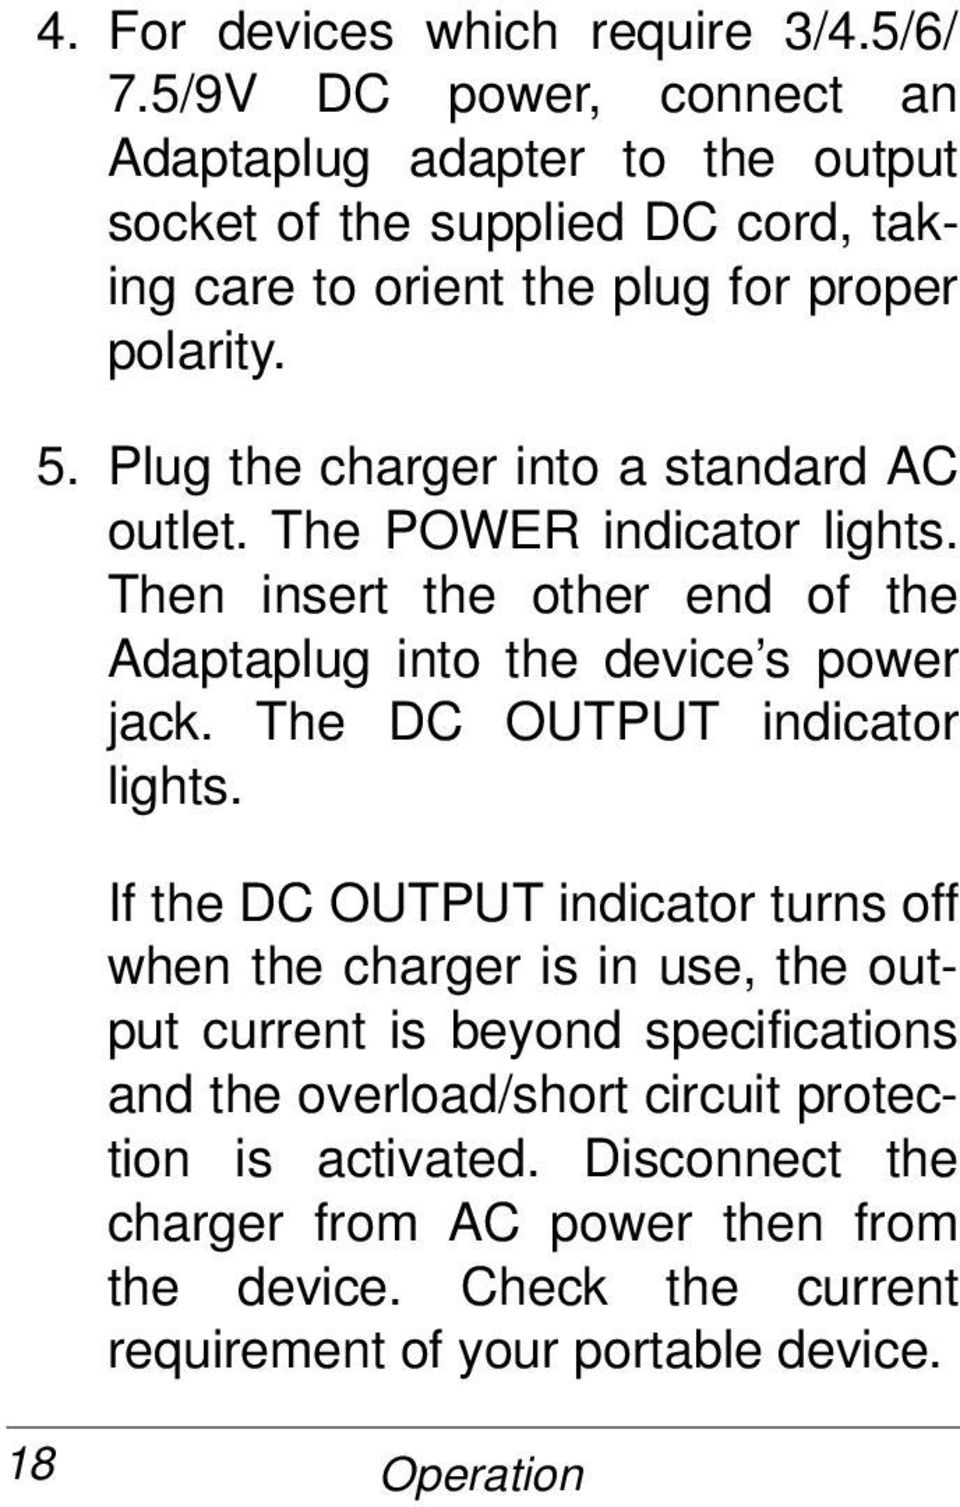 Plug the charger into a standard AC outlet. The POWER indicator lights. Then insert the other end of the Adaptaplug into the device s power jack.